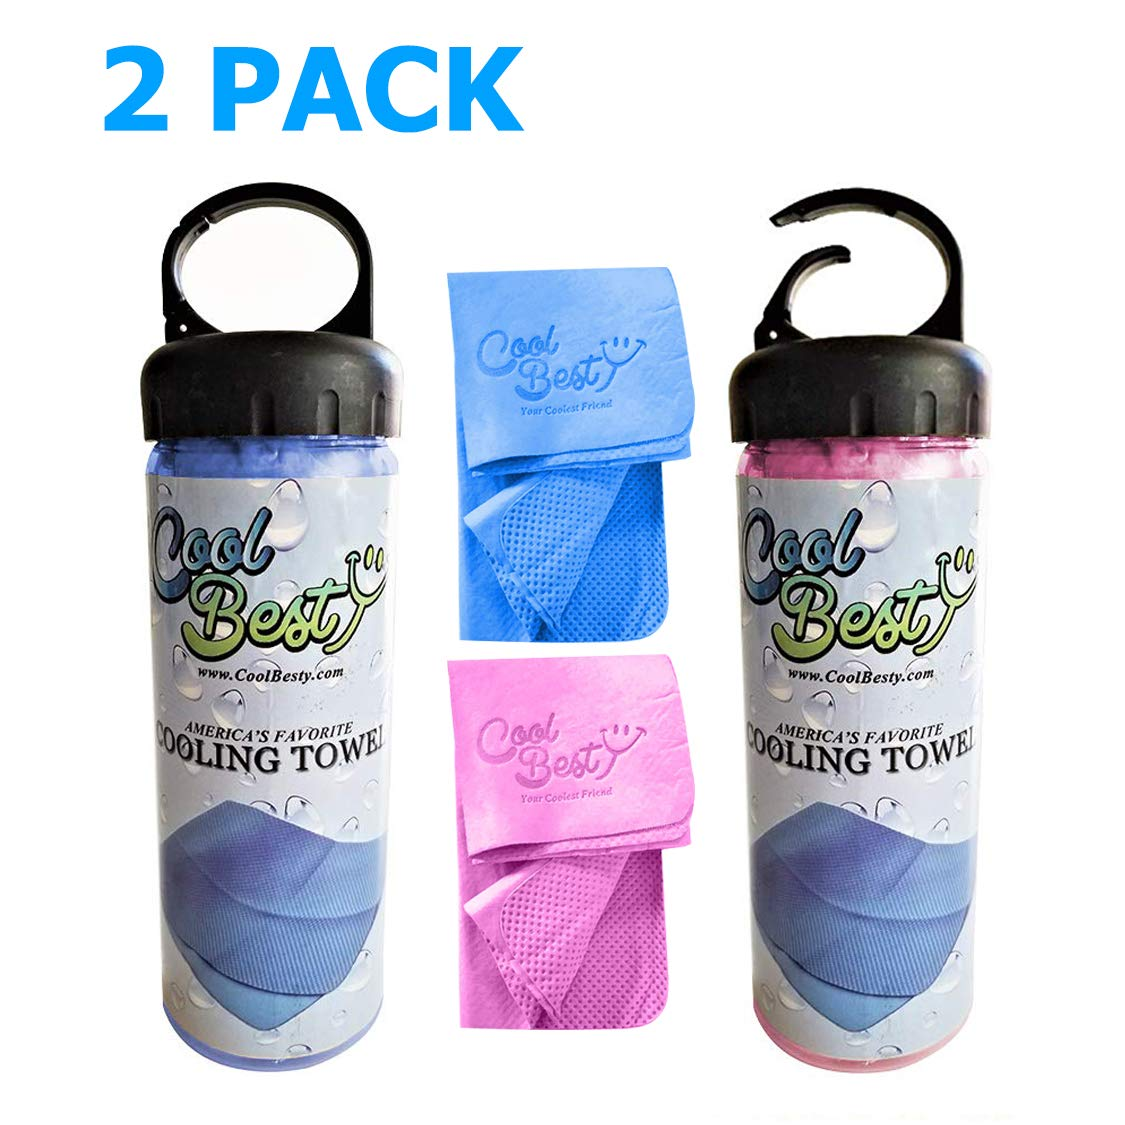 Cool Besty 2 Pack-Blue/Pink - Cooling Towel-Workout/Tennis/Golf/Biking-Best for Any Sport Activities&Athletes Cold Towel-Chilly Pad Instant Cooling Snap Towel-Perfect for Fitness&Gym